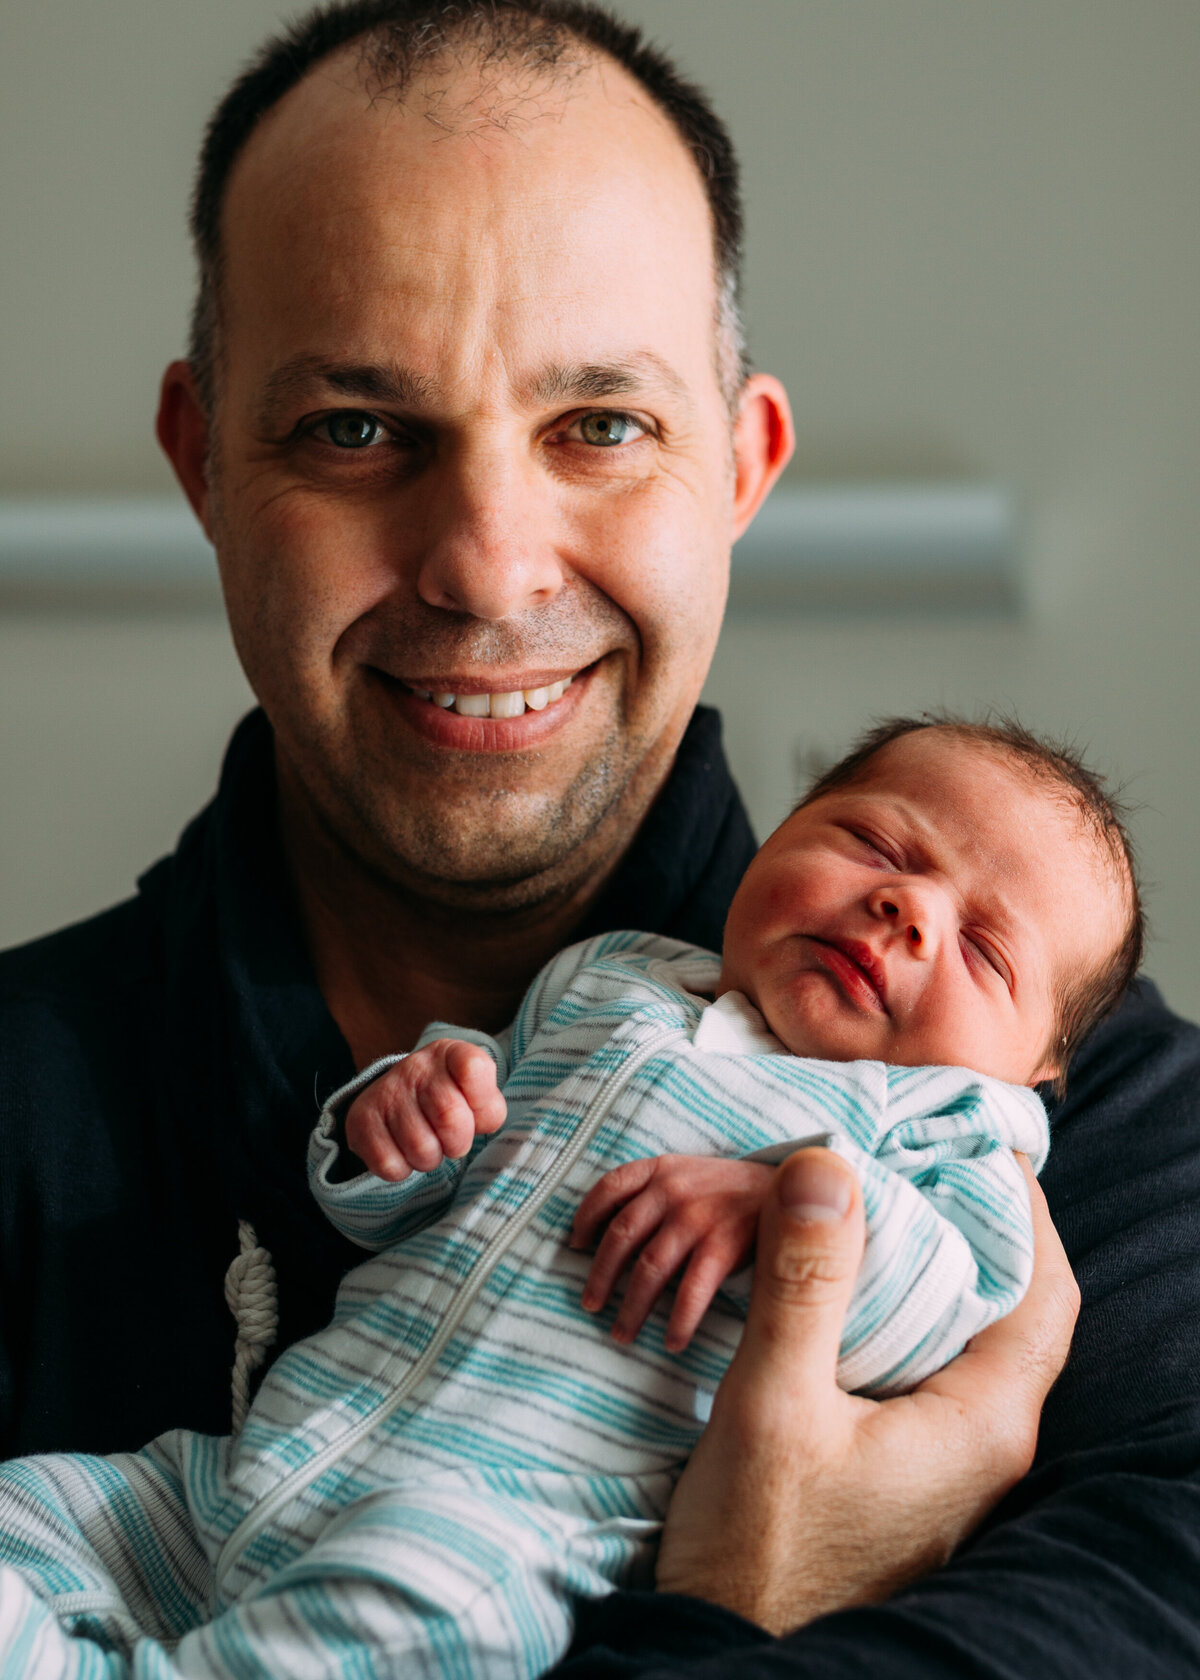 proud dad with baby In hospital Fresh 48 photography Melbourne And So I Don't Forget Photography